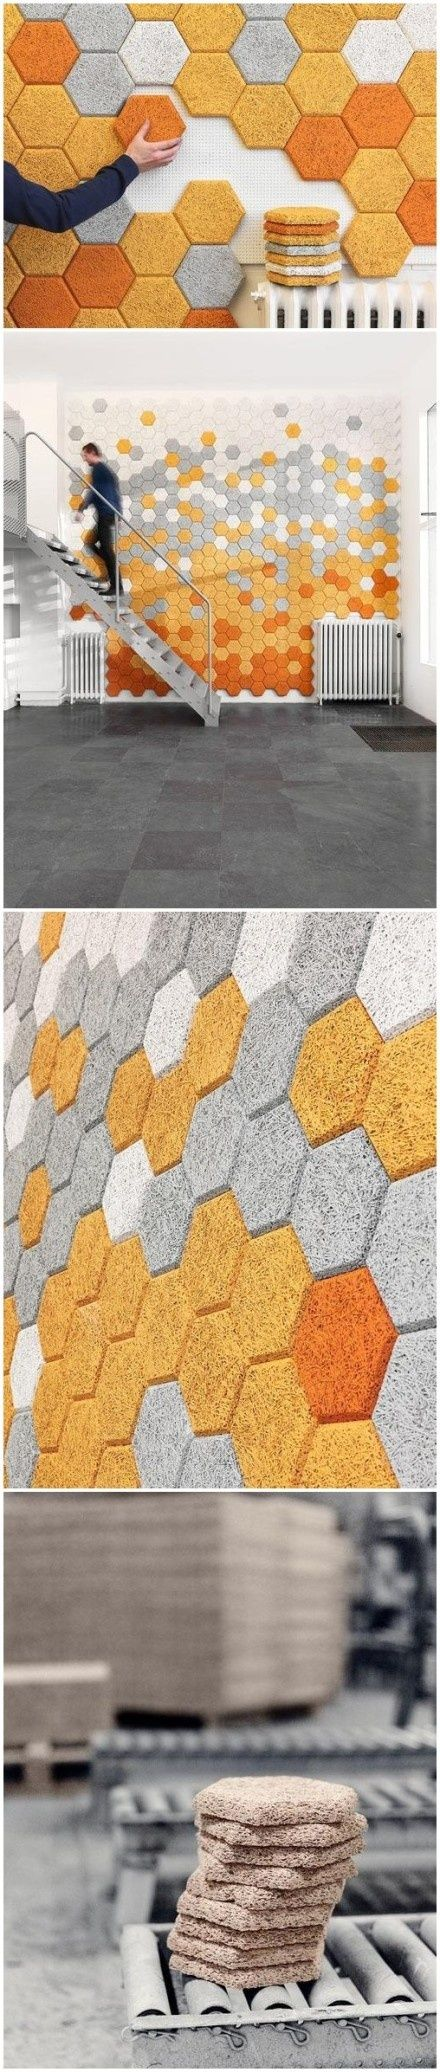 """What can we do with a wall? Swedish Form Us With Love brings us a brand new choice. Hexagon is special """"tile"""" made of woodwool cement which is environmentally friendly, water resistant, moisture and sound absorbent. These would make a great sound blocking wall treatment for a Lego room!"""